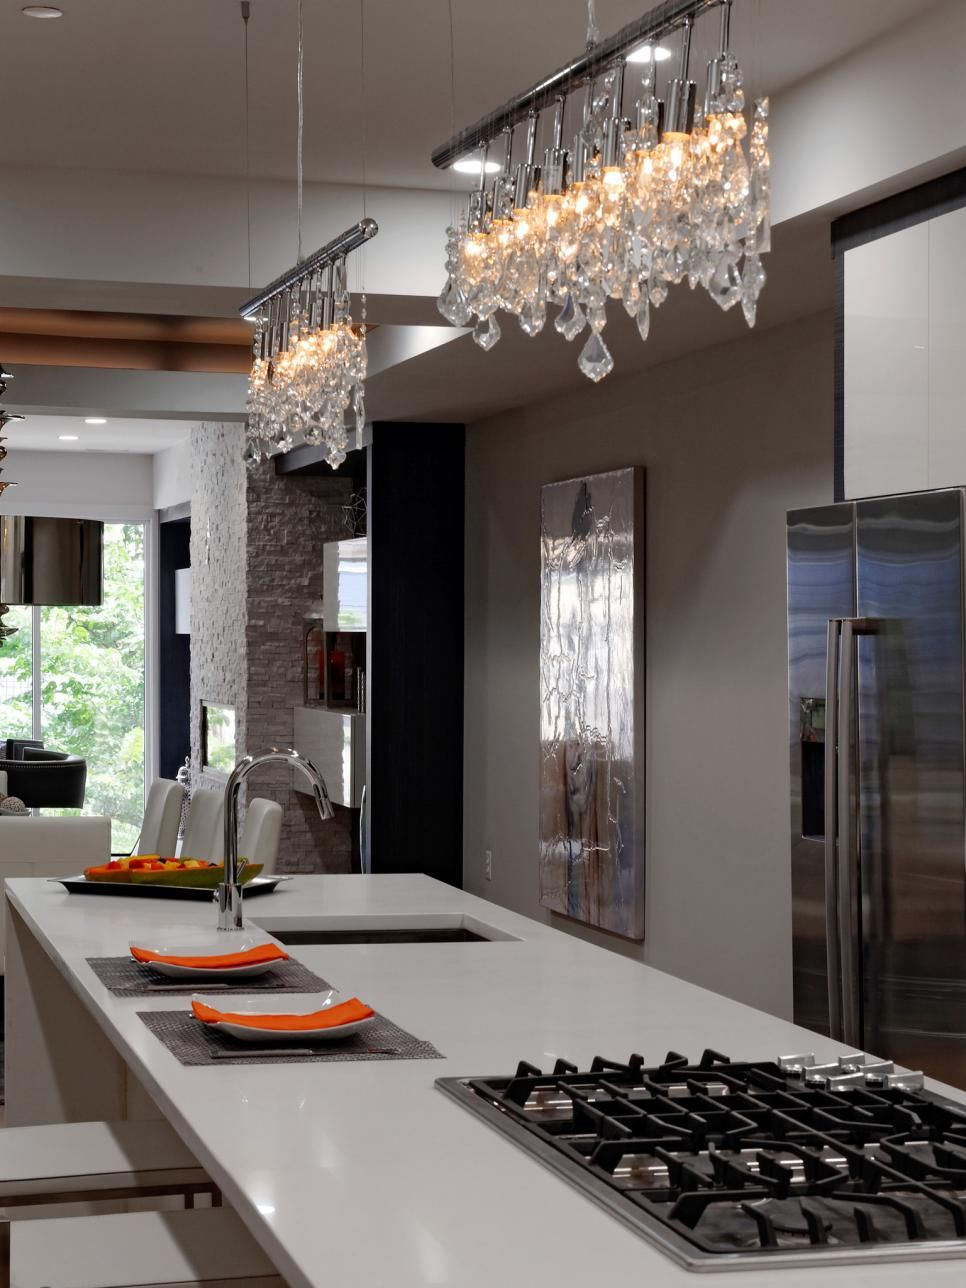 This Modern Kitchen Has Neutral Colors That Provide A Sleek Modern Look The White Countertop And Stainless Steel Appliances Contribute To Modern Kitchen Island Kitchen Wall Colors Modern Track Lighting